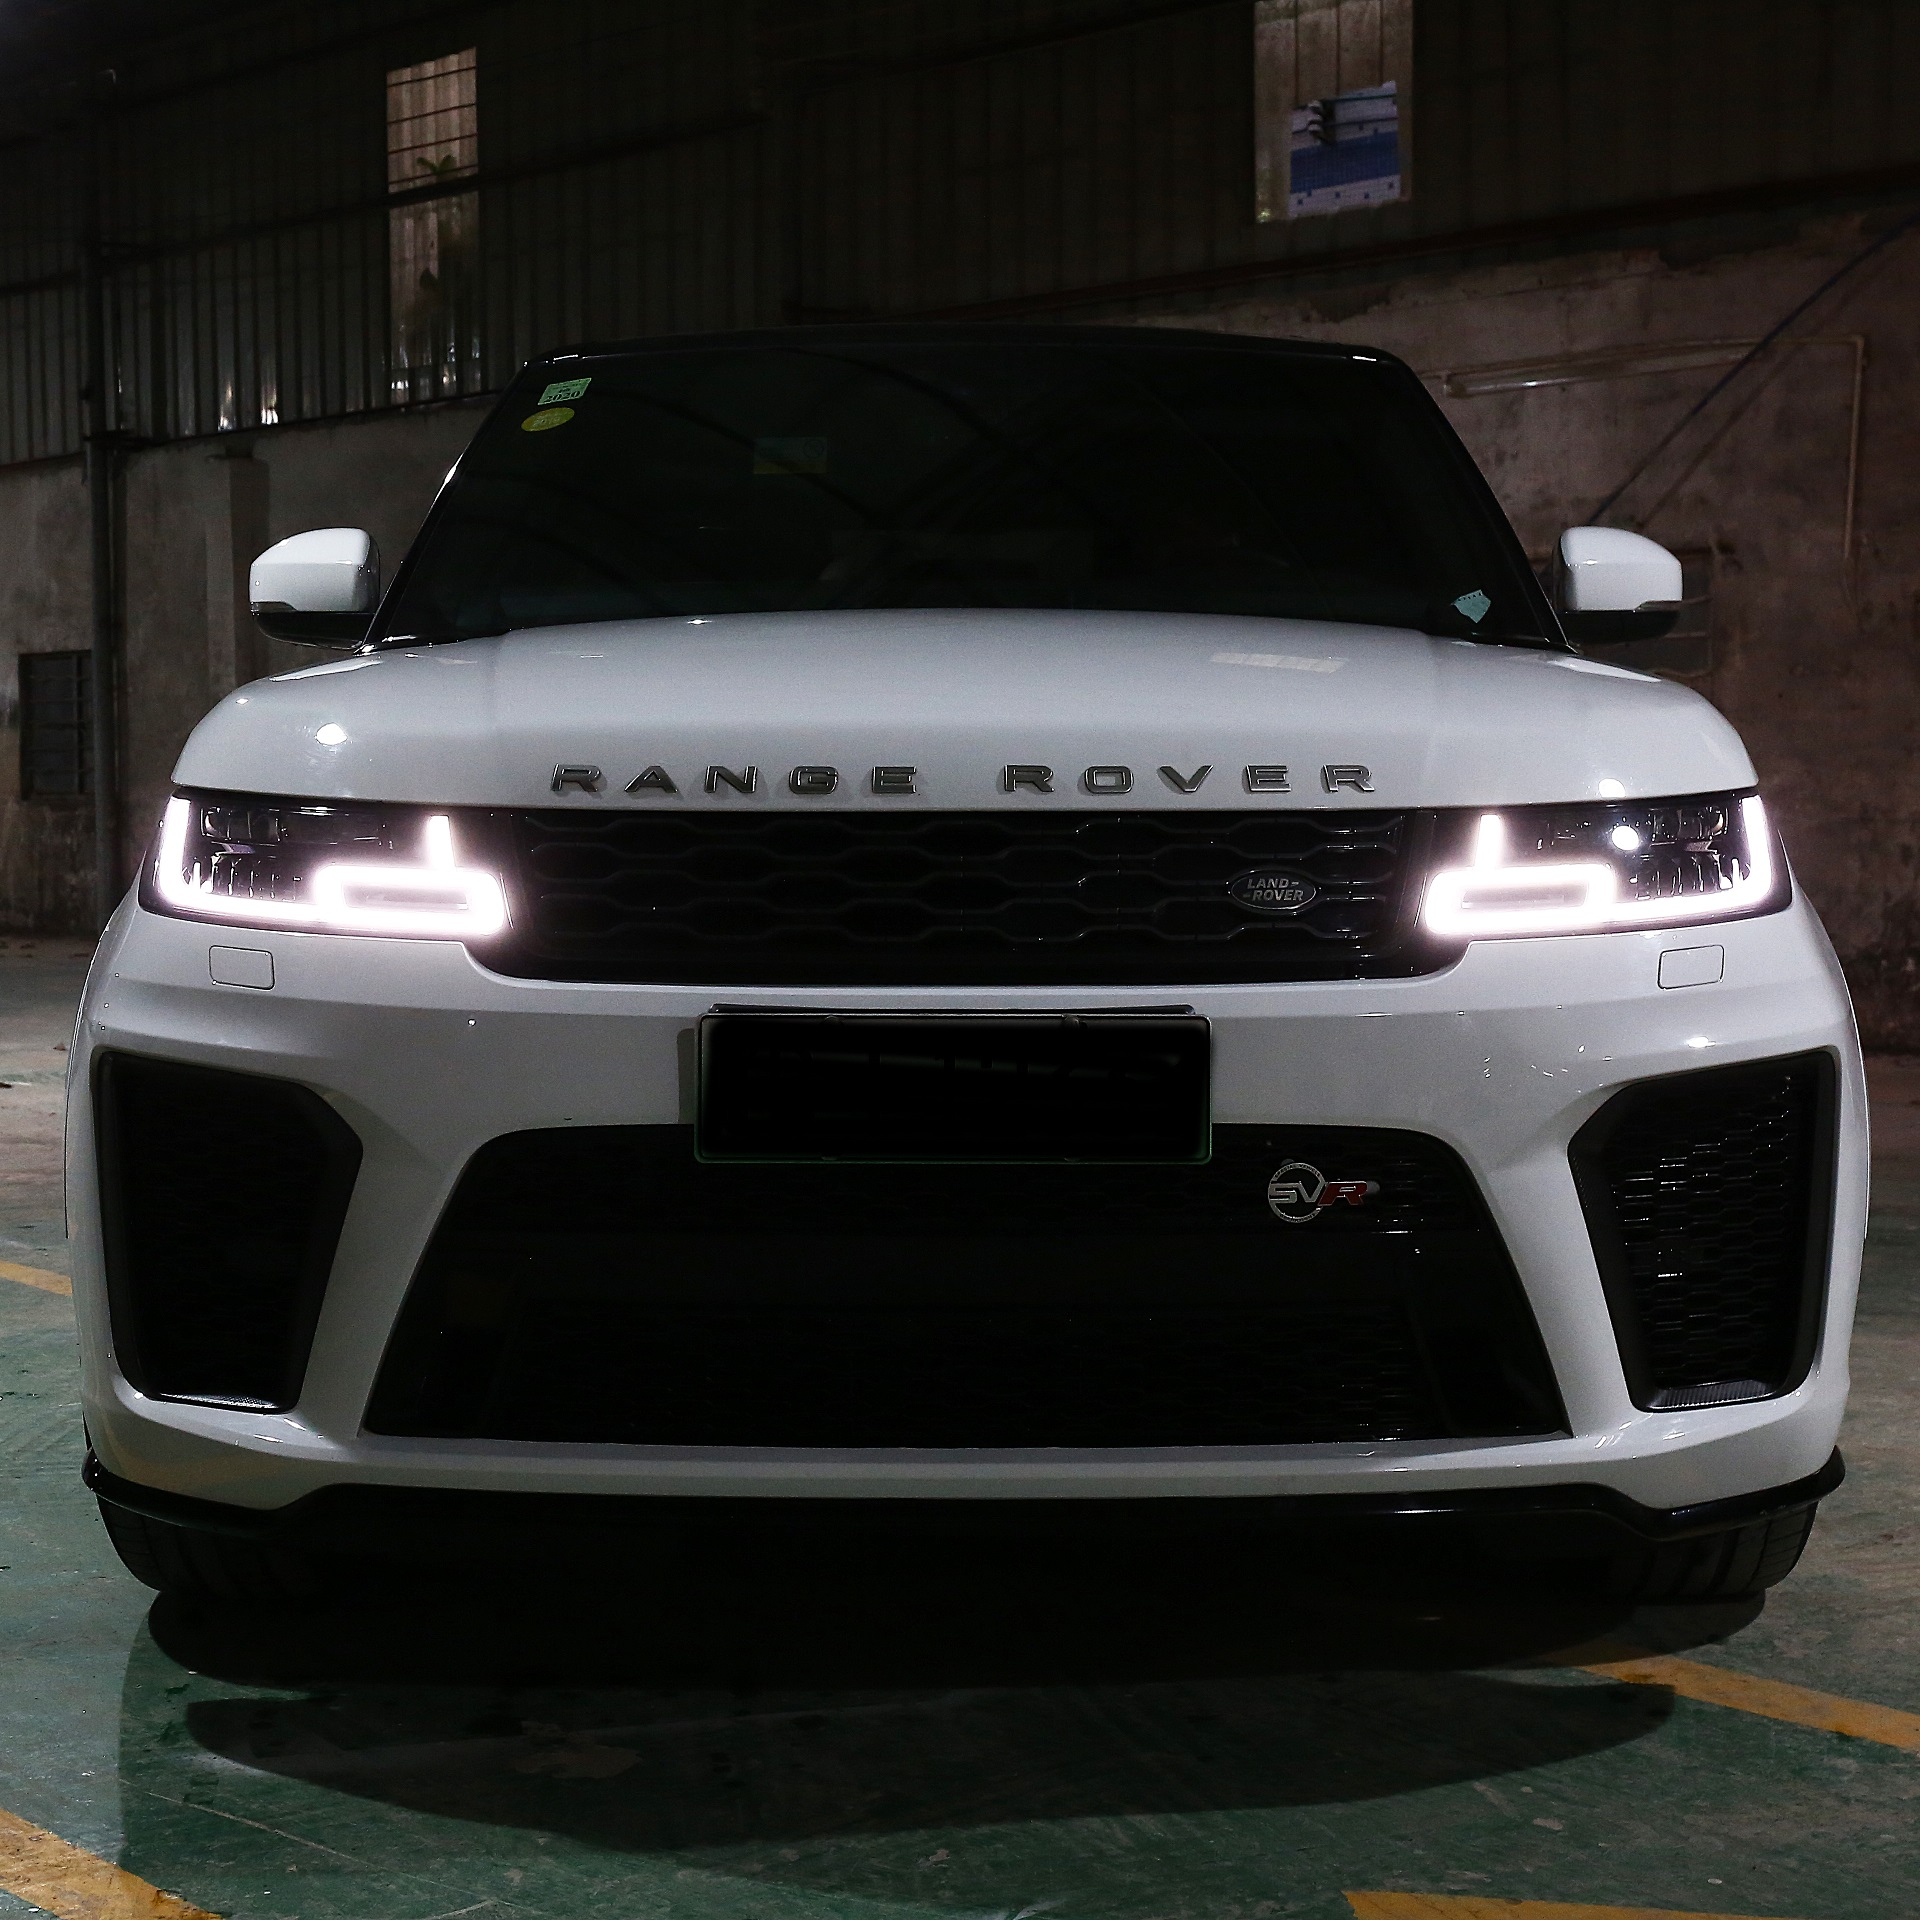 Automobile refitting for Land Rover Range Rover SVR18 upgrade Modified High-quality and beautiful decoration